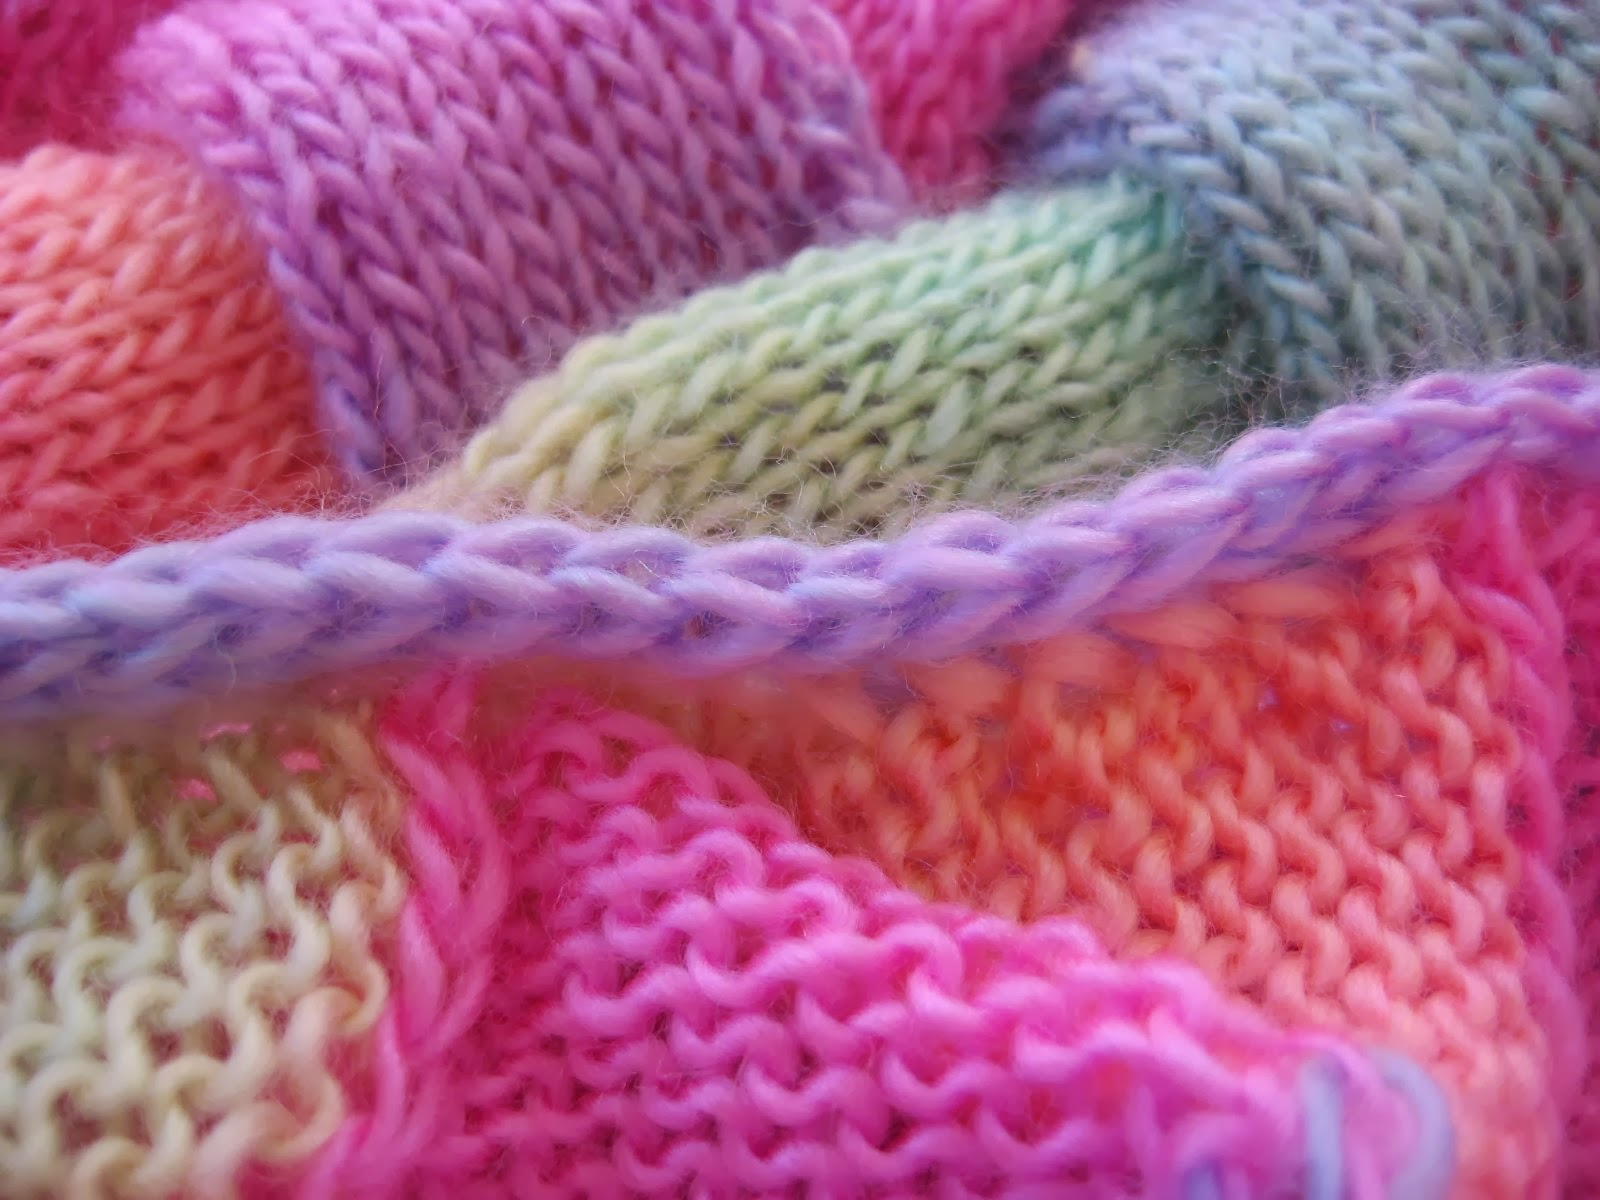 hooked on needles knitted entrelac baby blanket finished